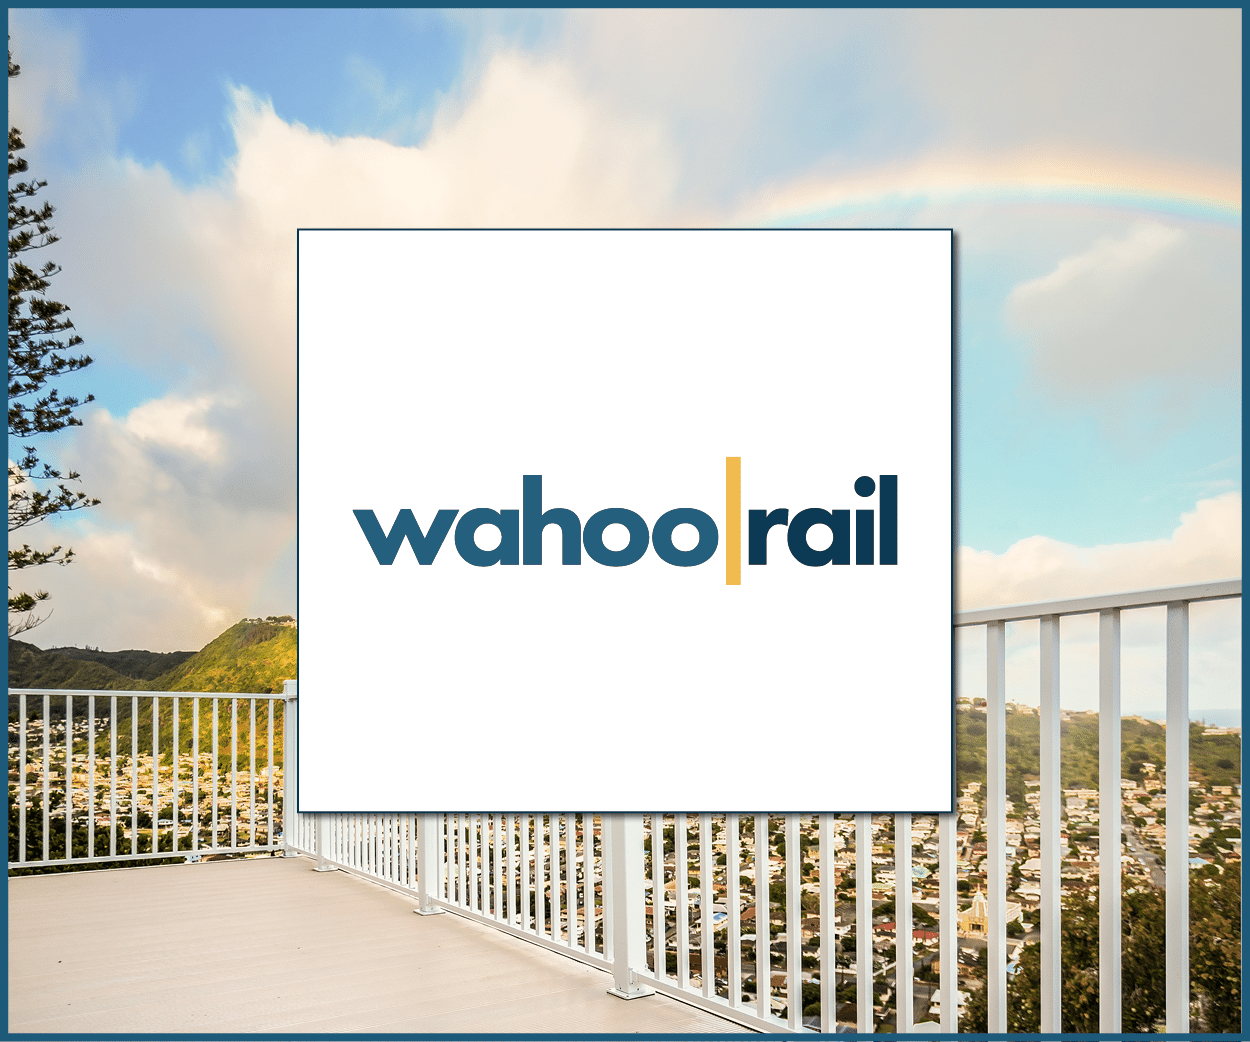 Wahoo rail aluminum deck railing system - glass railing option